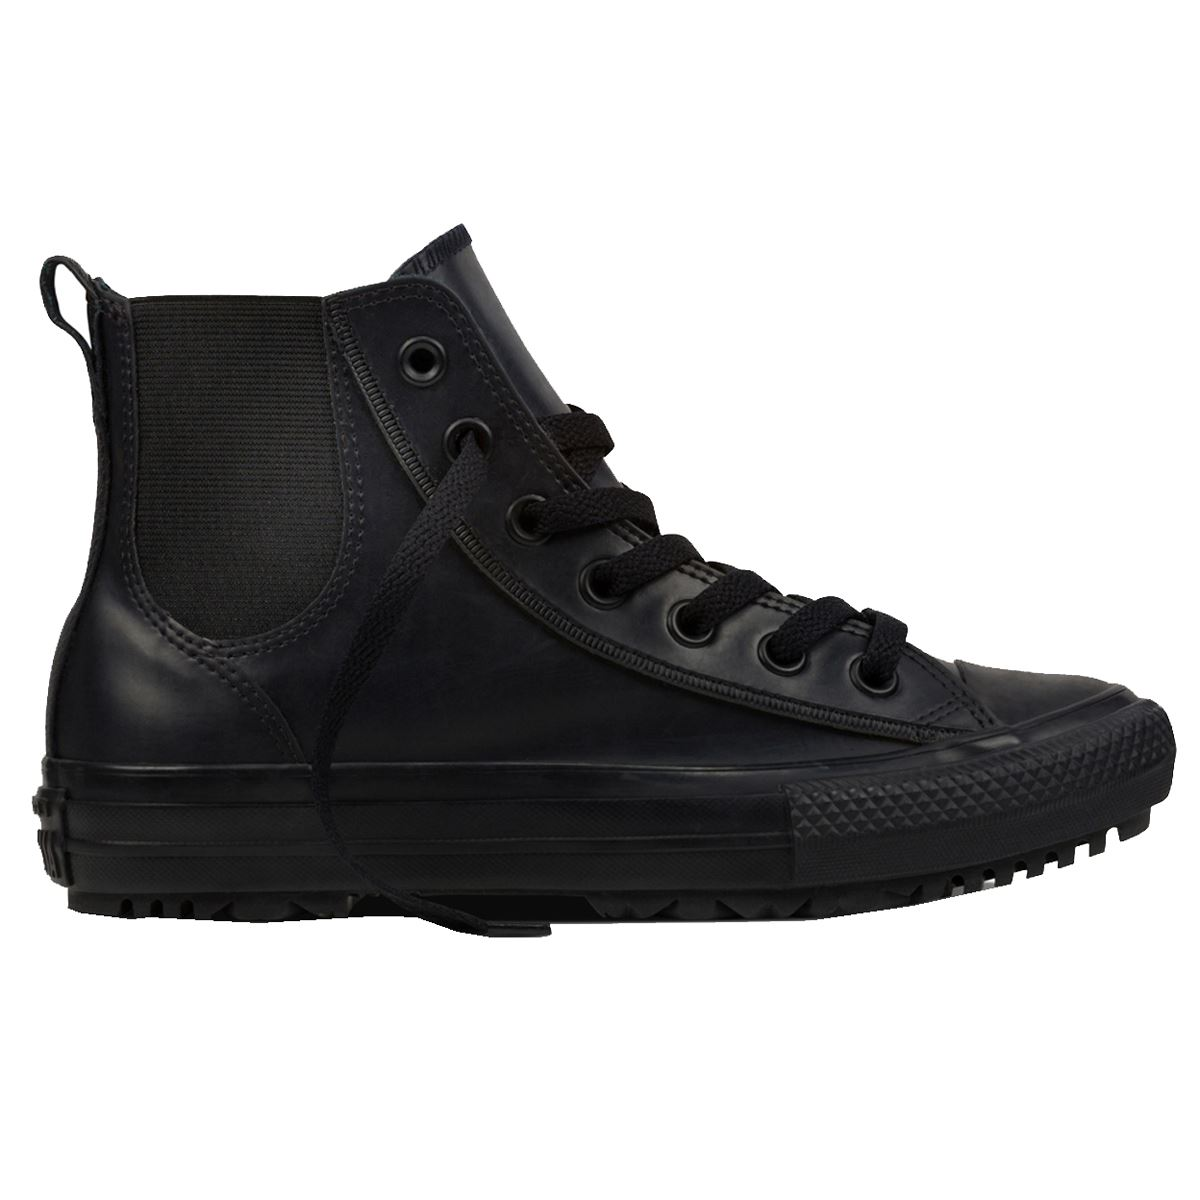 Converse All Star Chelsea Boot Rubber Hi Black Womens Boots